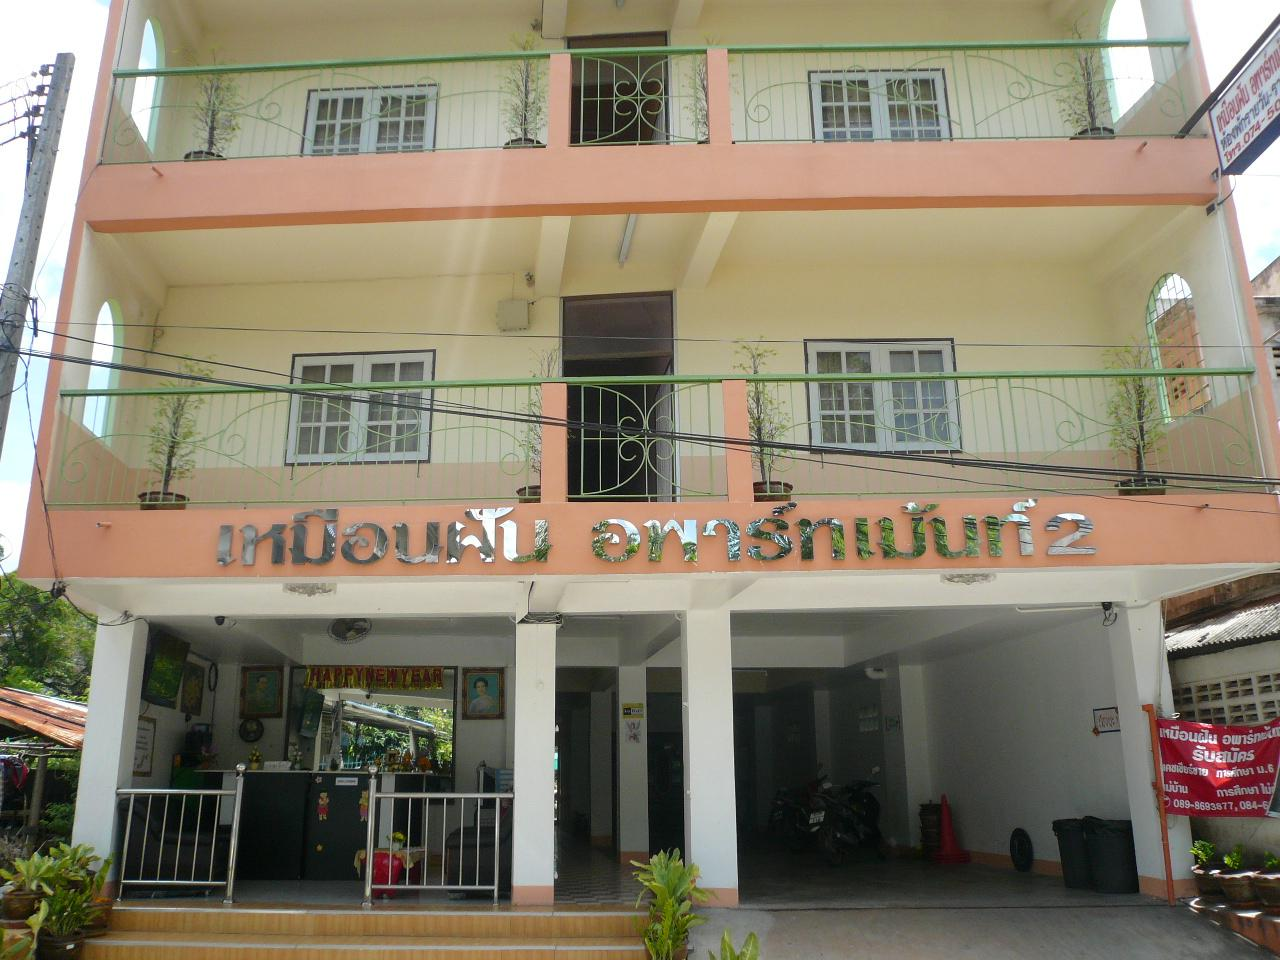 Muean Fun Apartment 2 - Hotels and Accommodation in Thailand, Asia